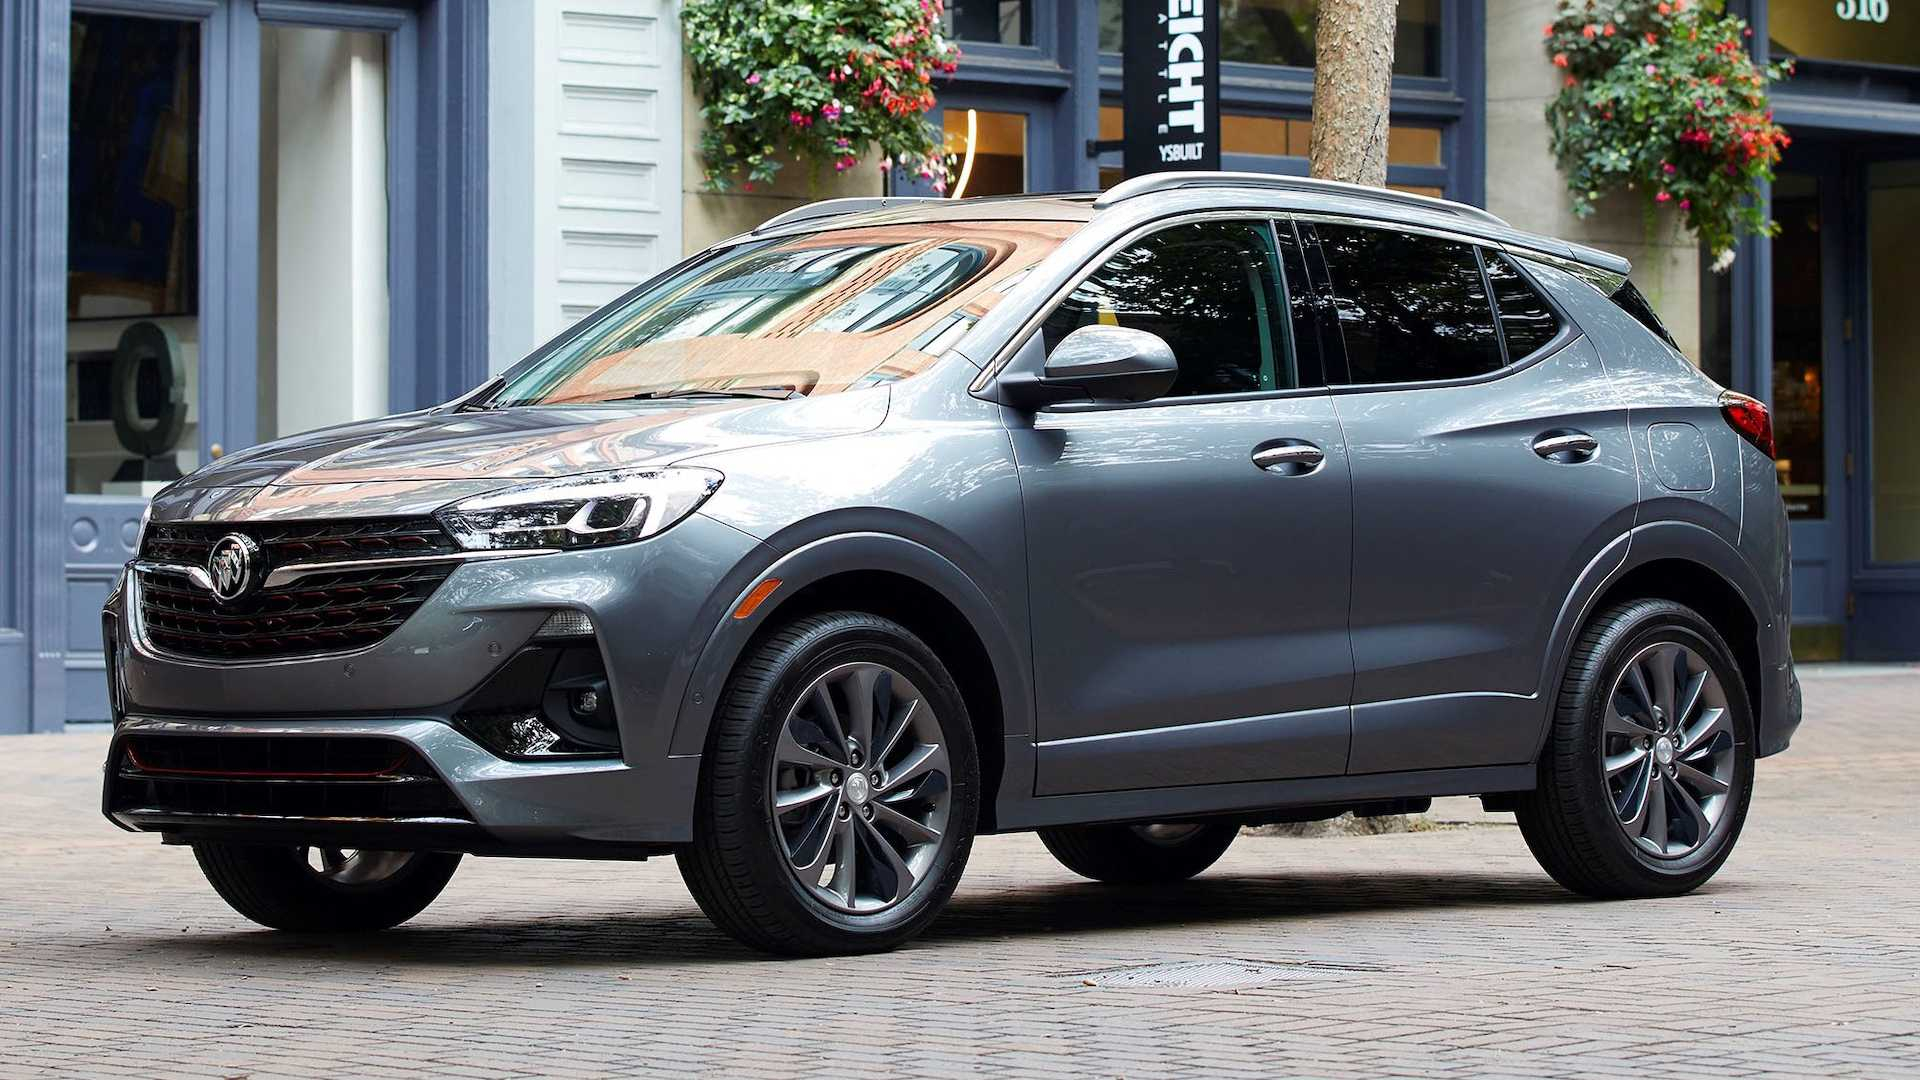 2021 Buick Encore Gx Details Emerge: Styling Tweaks, More Tech New 2022 Buick Encore Gx Manual, Engine, Dimensions